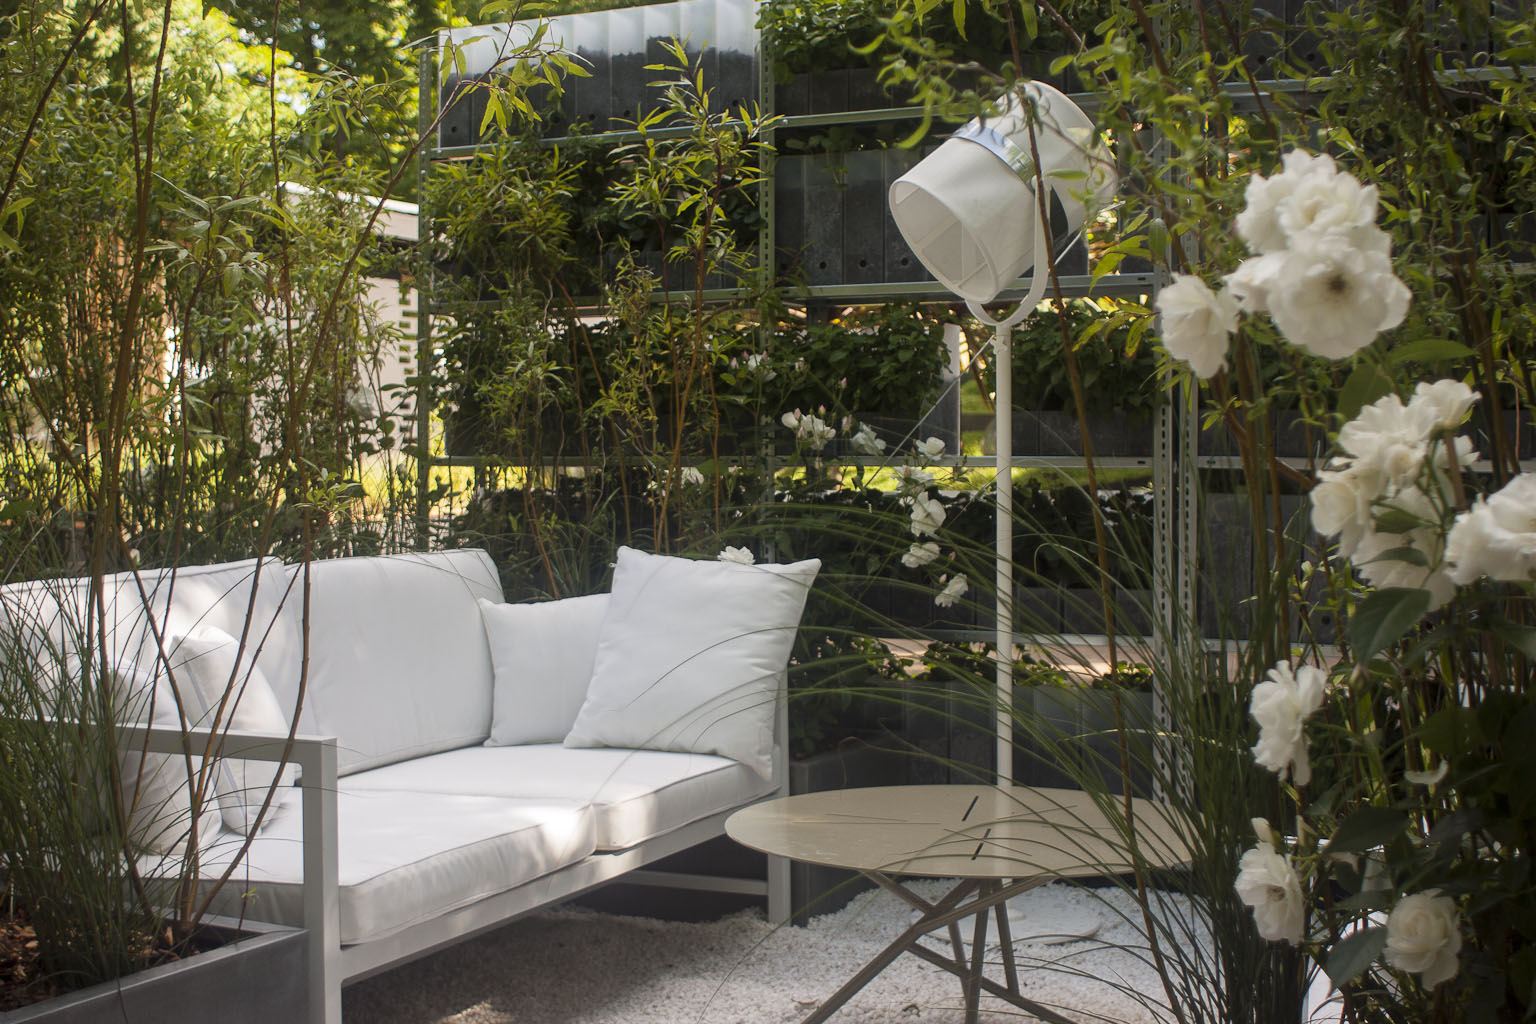 les tendances du jardin urbain mis en lumi re par jardins jardin aux tuileries un je ne sais. Black Bedroom Furniture Sets. Home Design Ideas